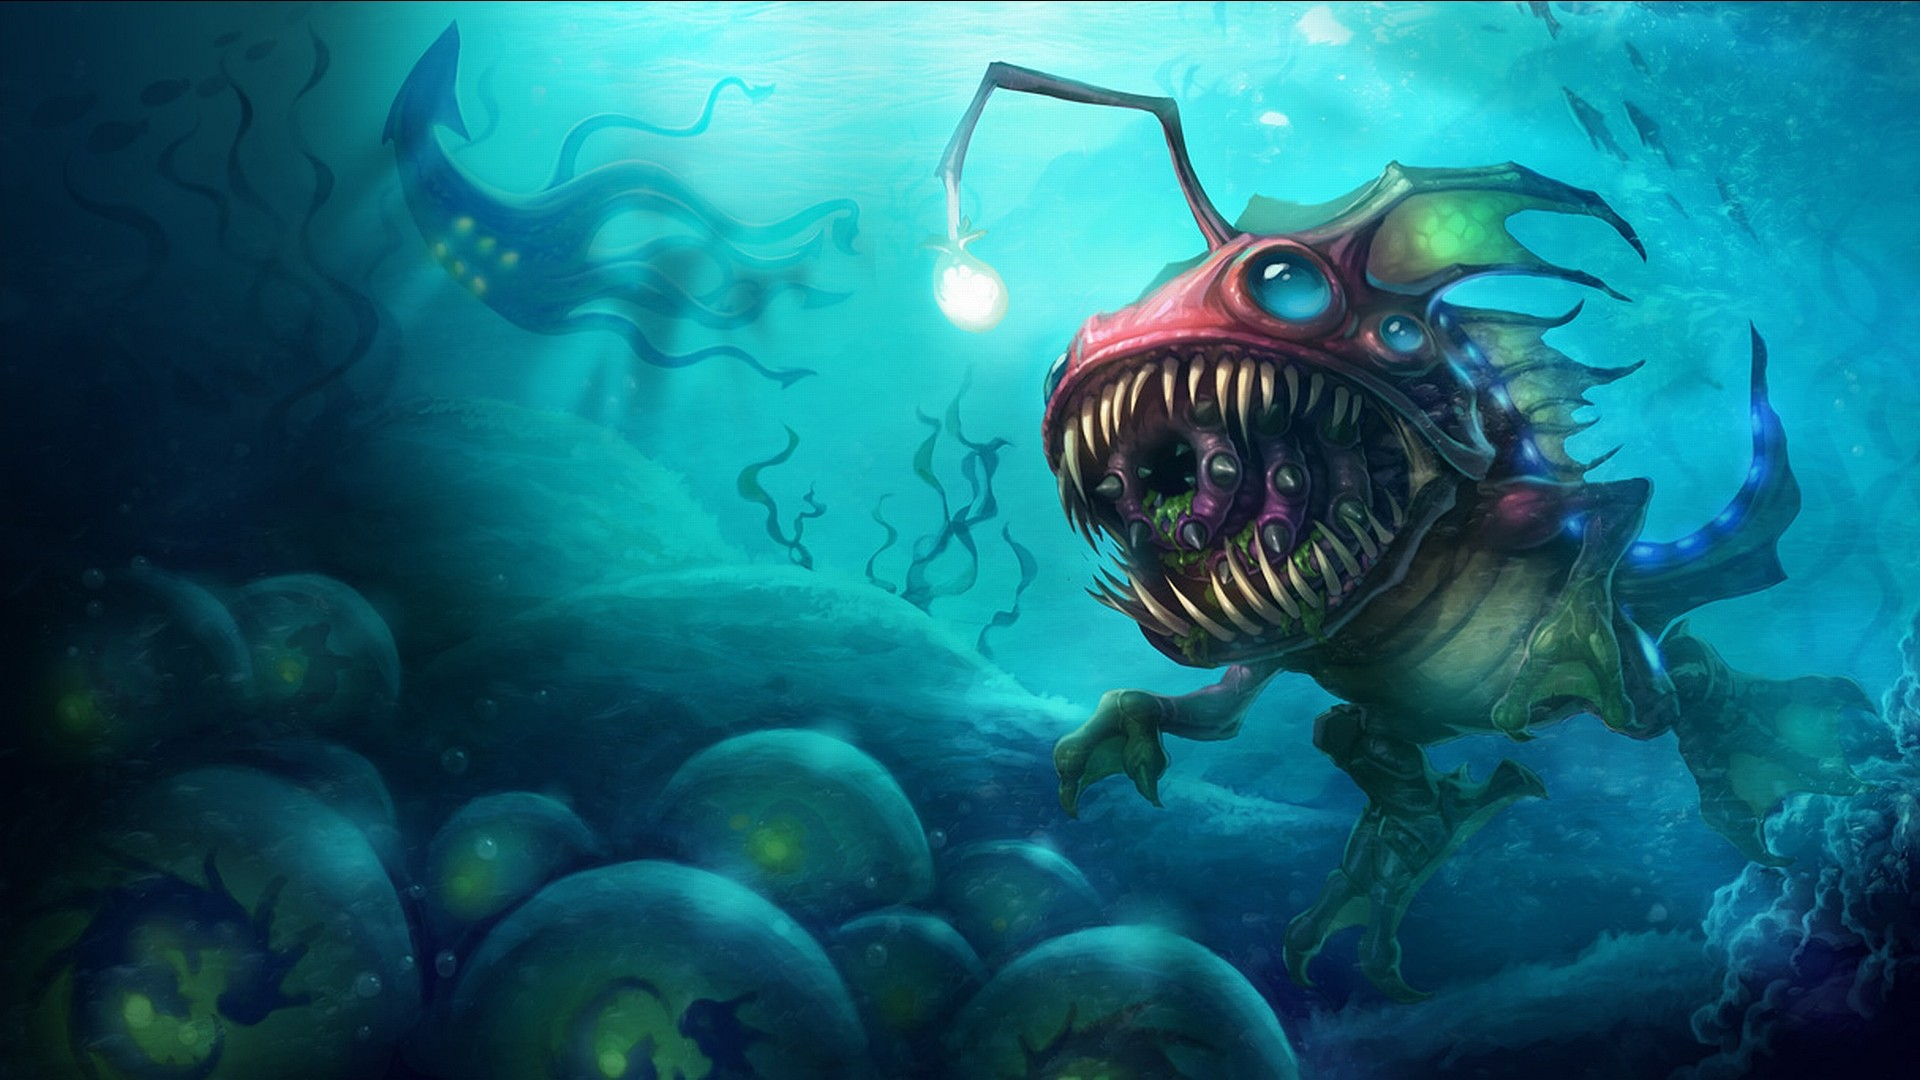 Sea monster from the League of Legends